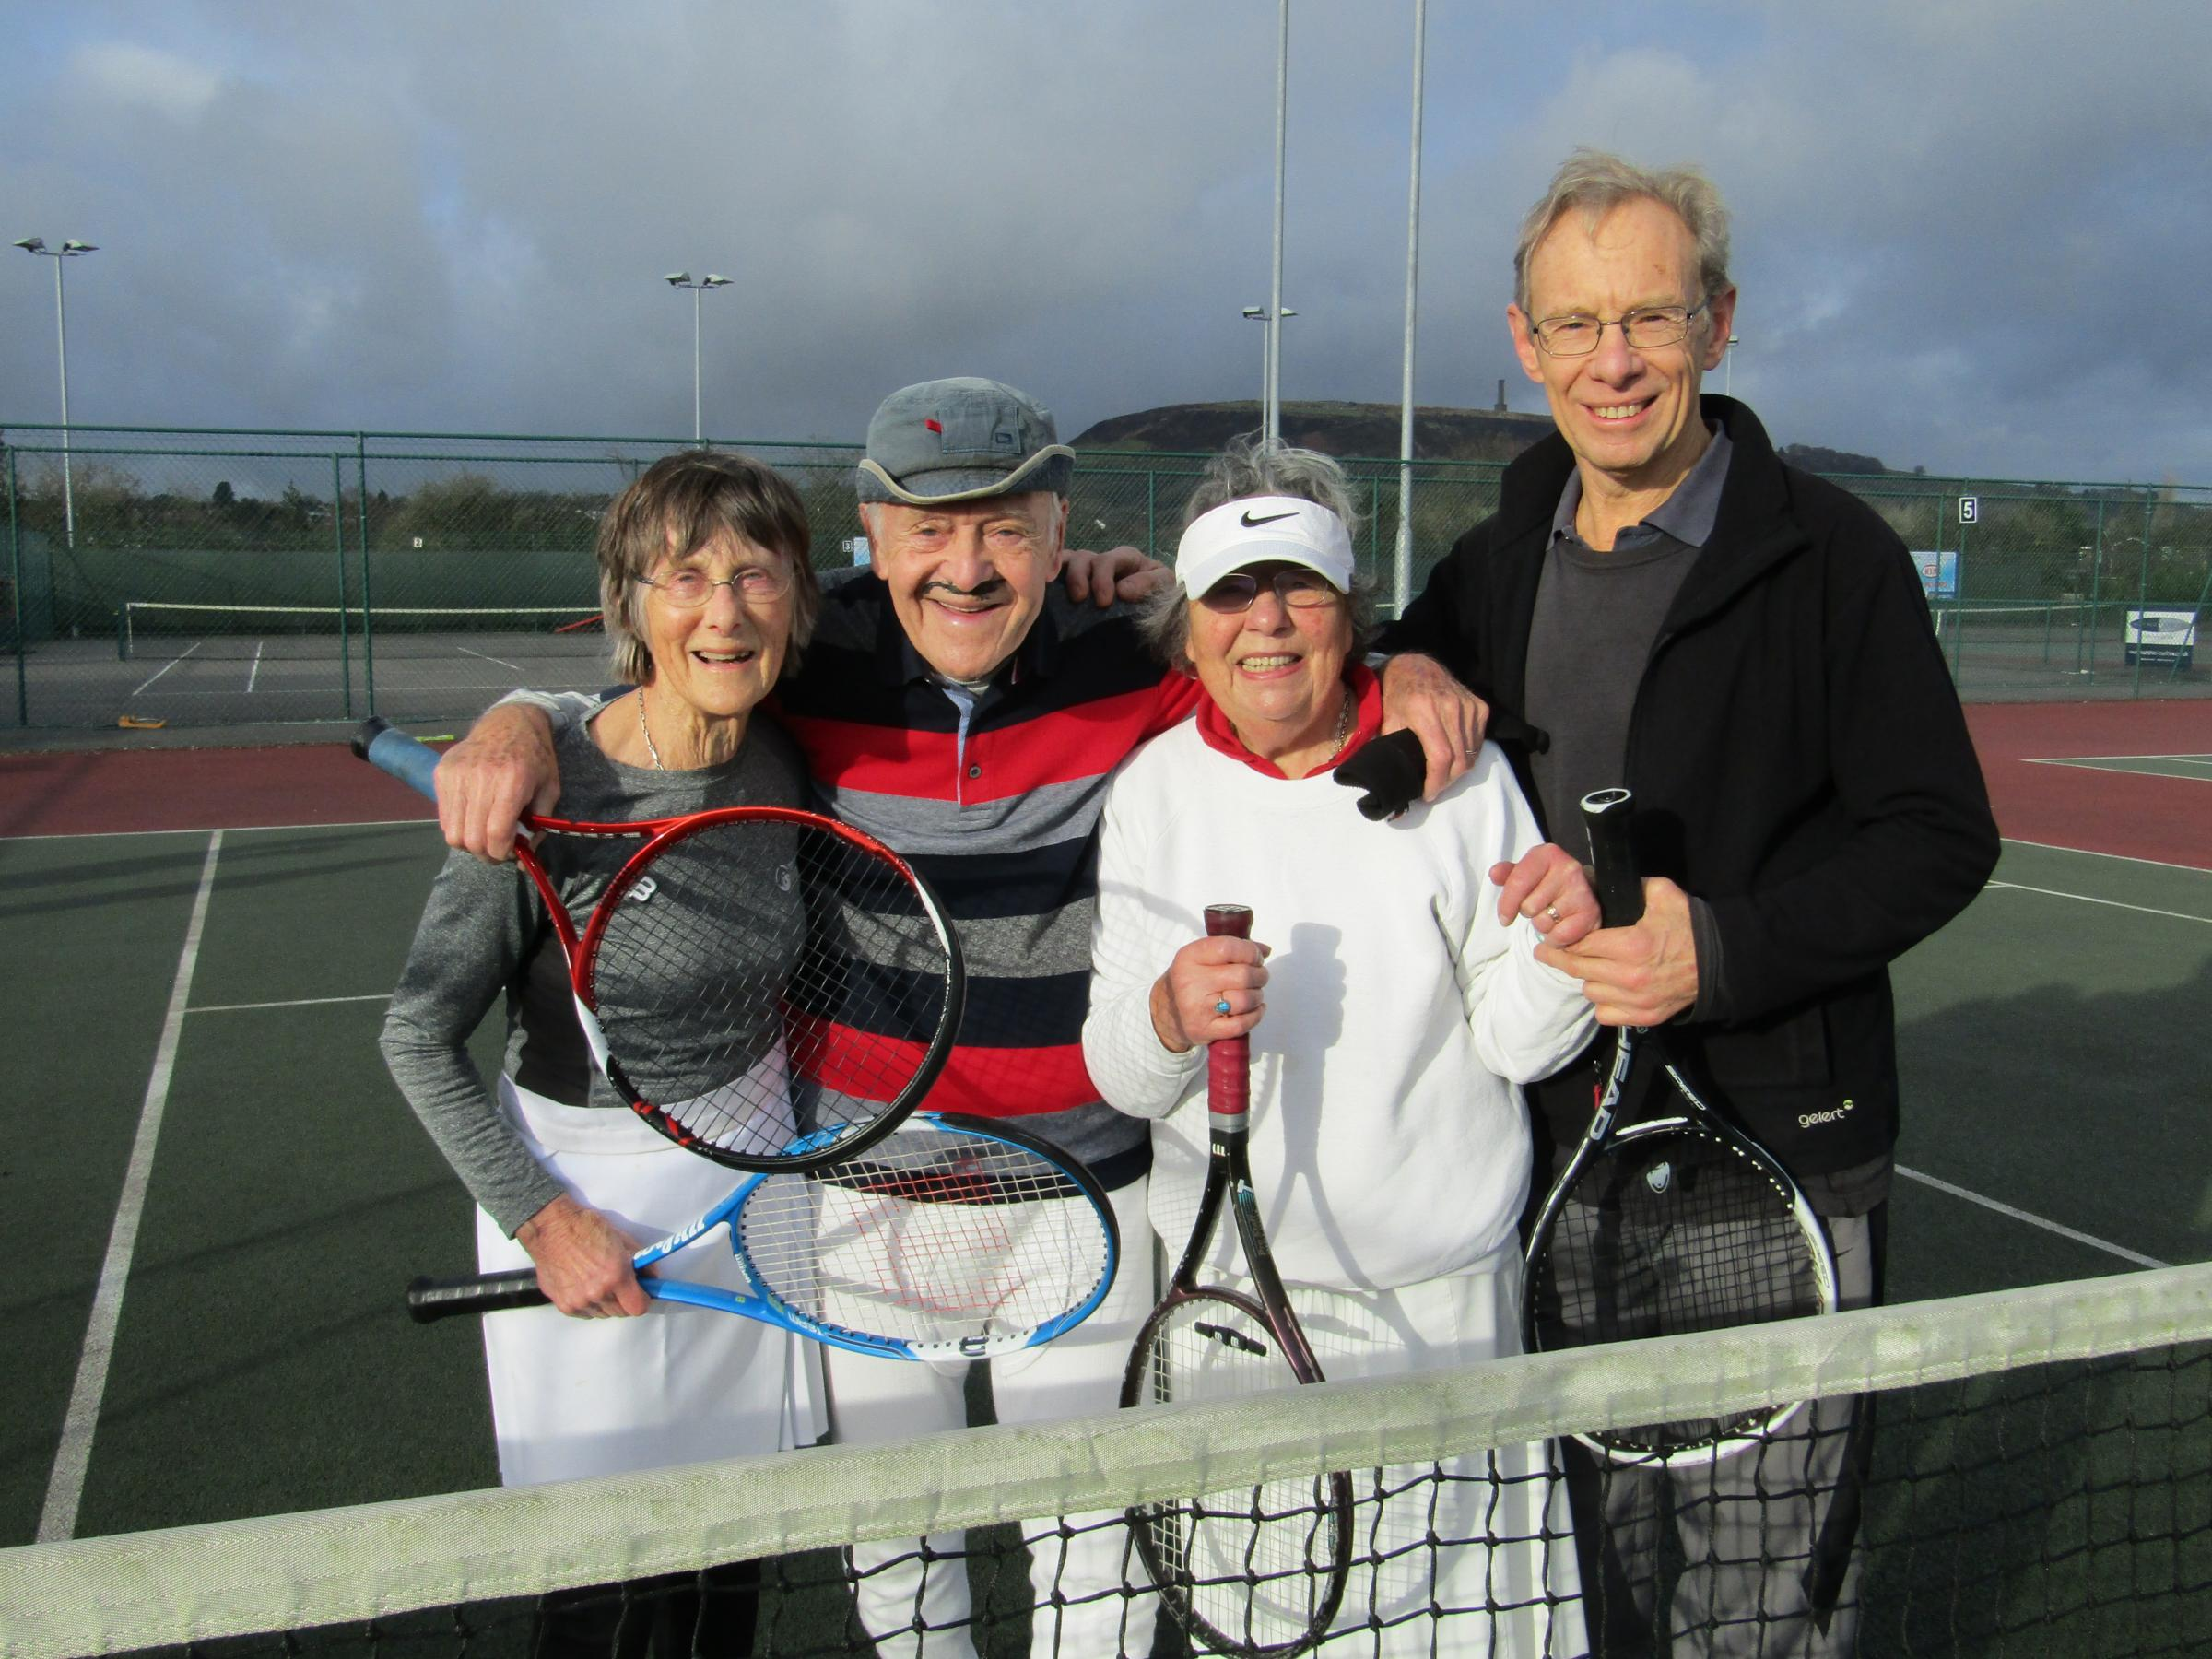 STILL PLAYING: Holcombe Brook Sports Club veterans, from left, Jane Bisson, Derek Schofield, Gretchen Pyves and Jeremy Stuart